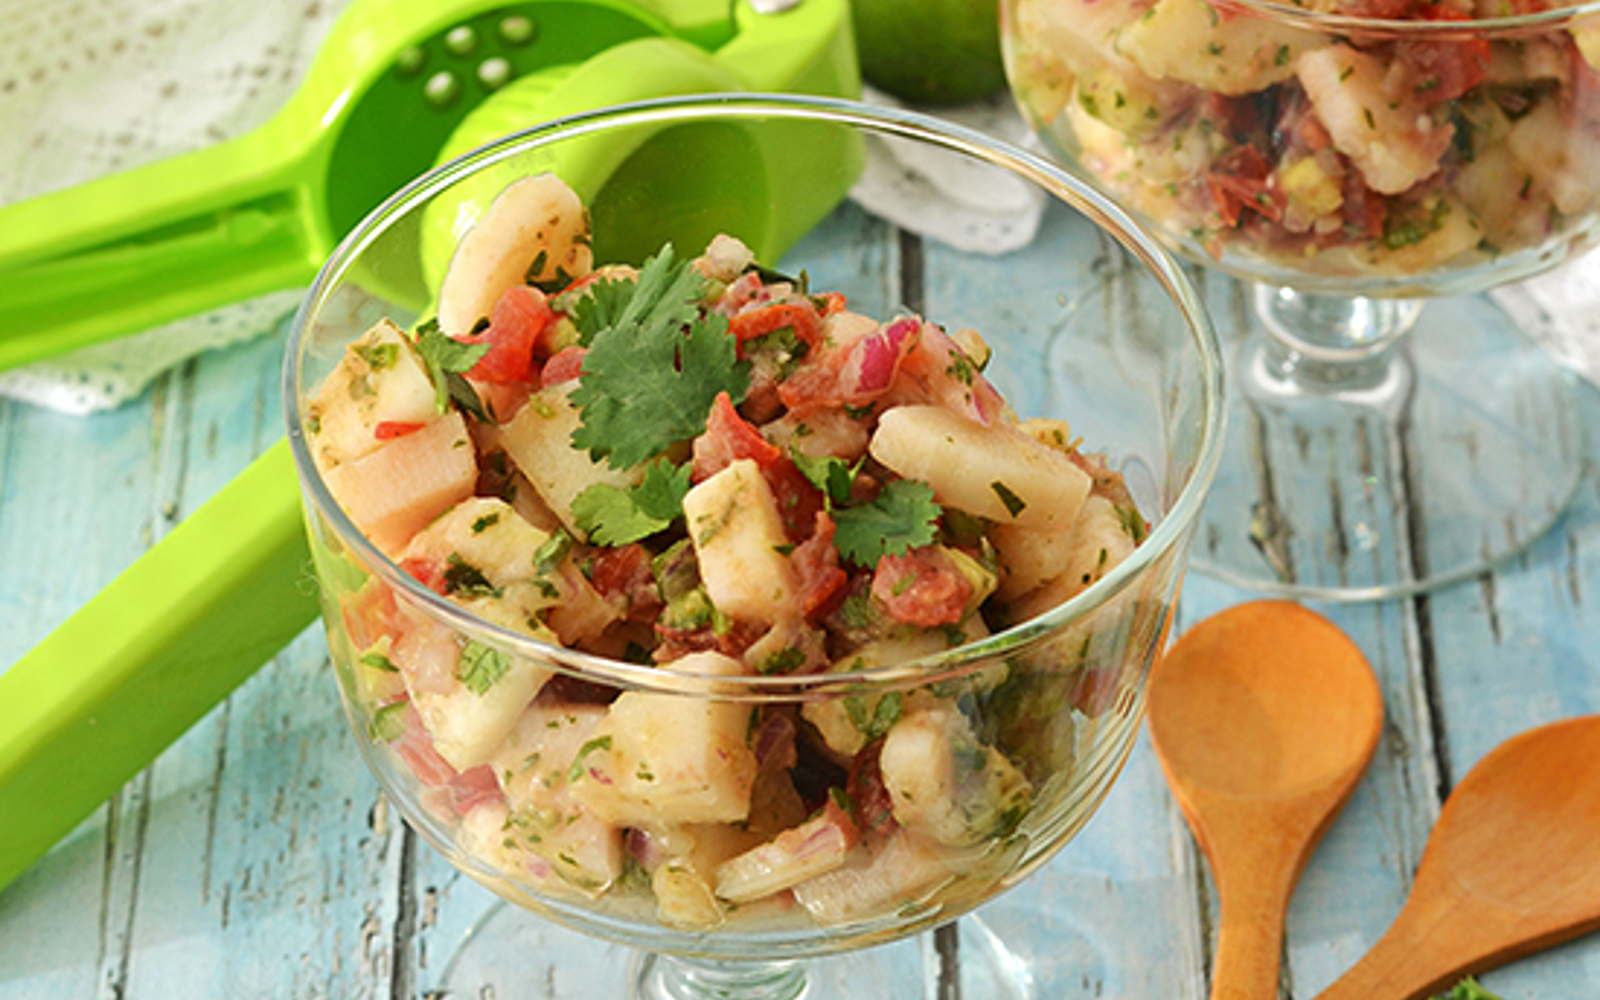 Spicy Mexican Hearts of Palm Ceviche